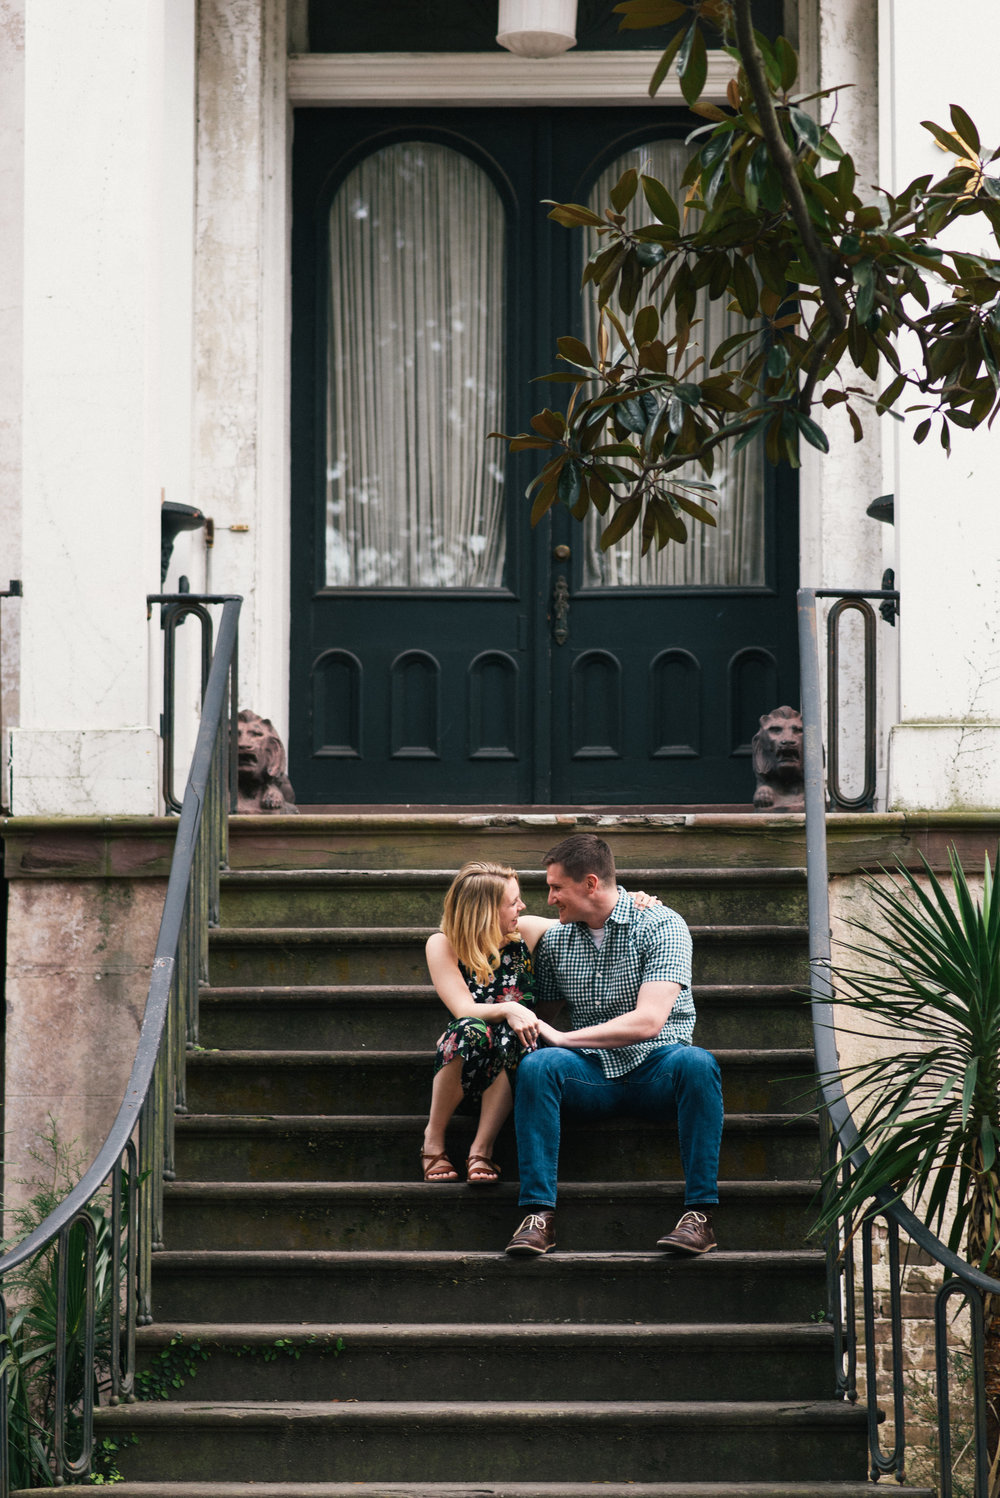 jake-and-allie-engagement-forsyth-park-savannah-flytographer- (37 of 47).jpg